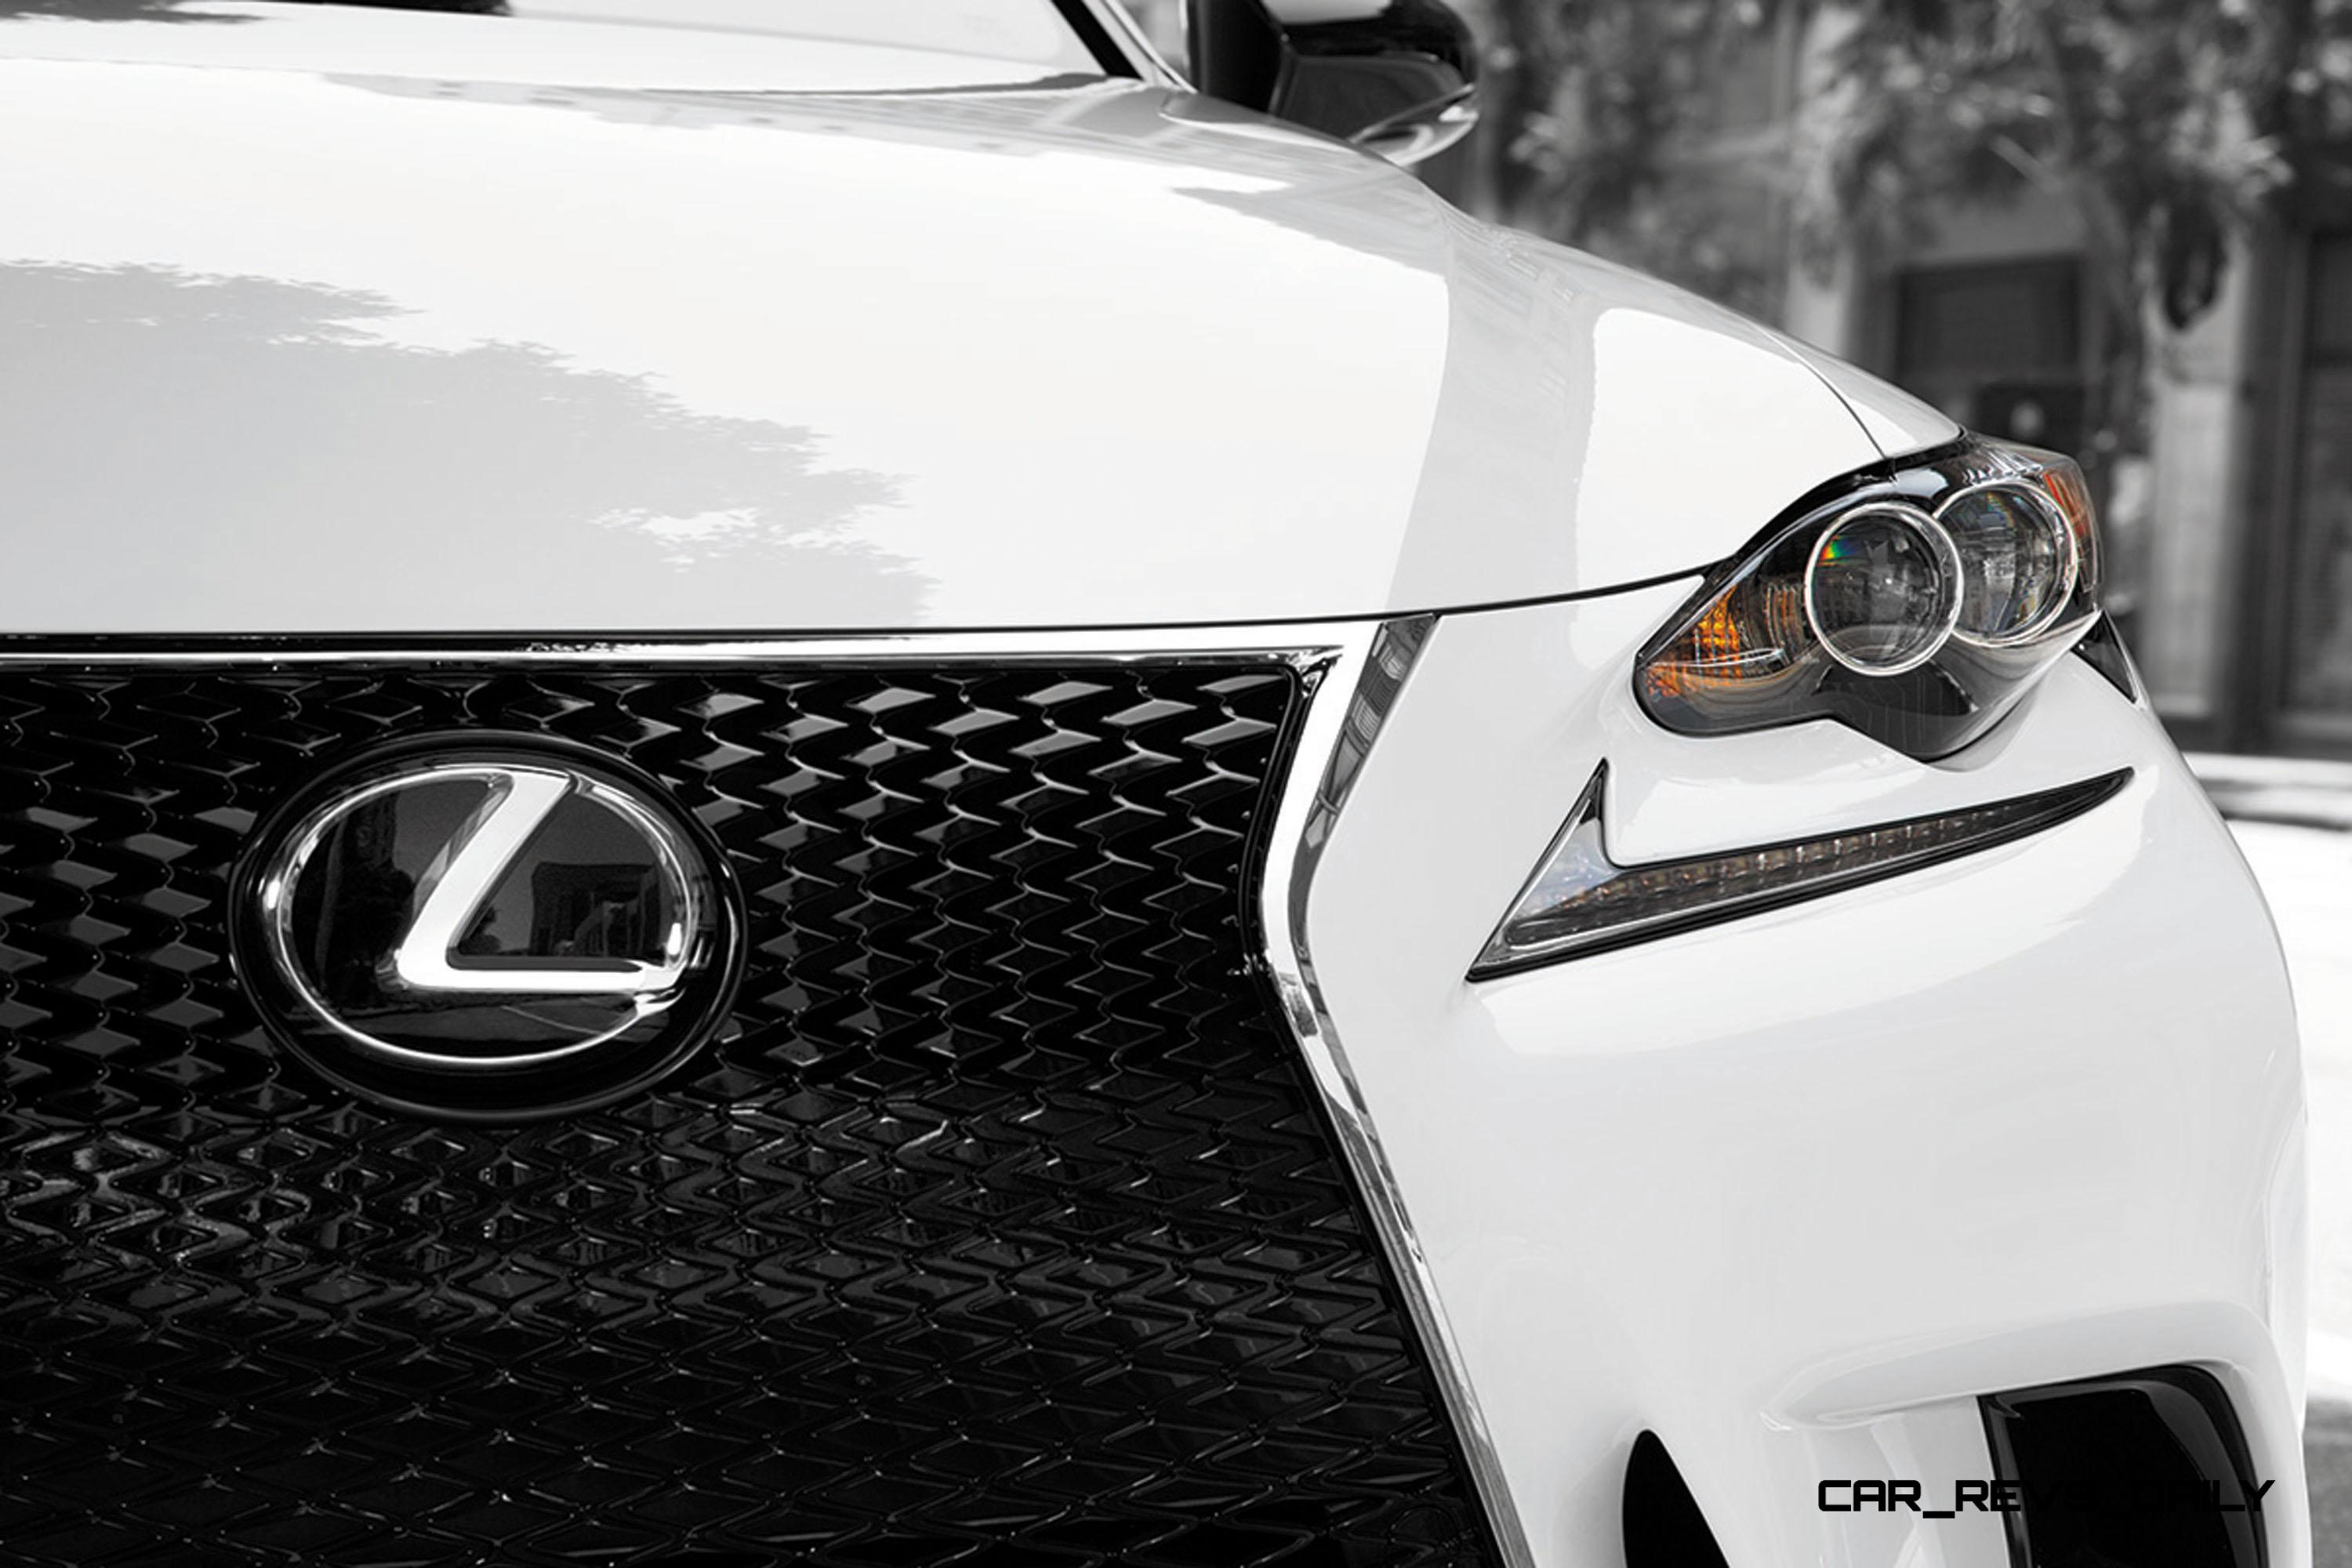 2015 Lexus Crafted Line Debuts at Pebble Beach with Five TUMI